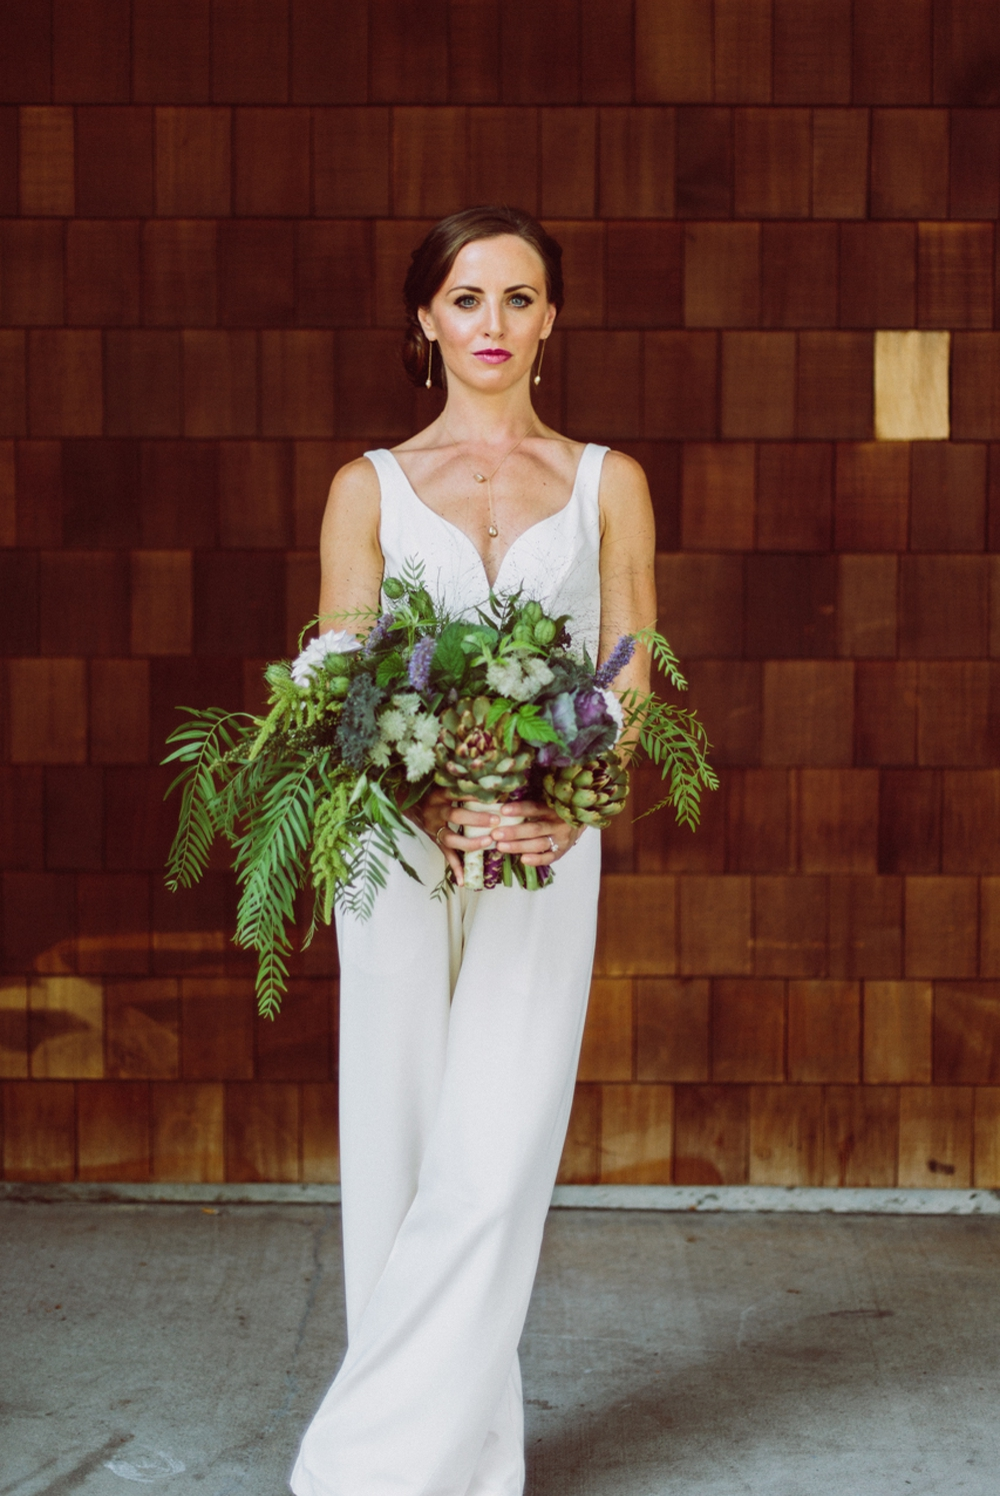 bride in white jumpsuit holding edible kale themed bouquet with herbs and berries